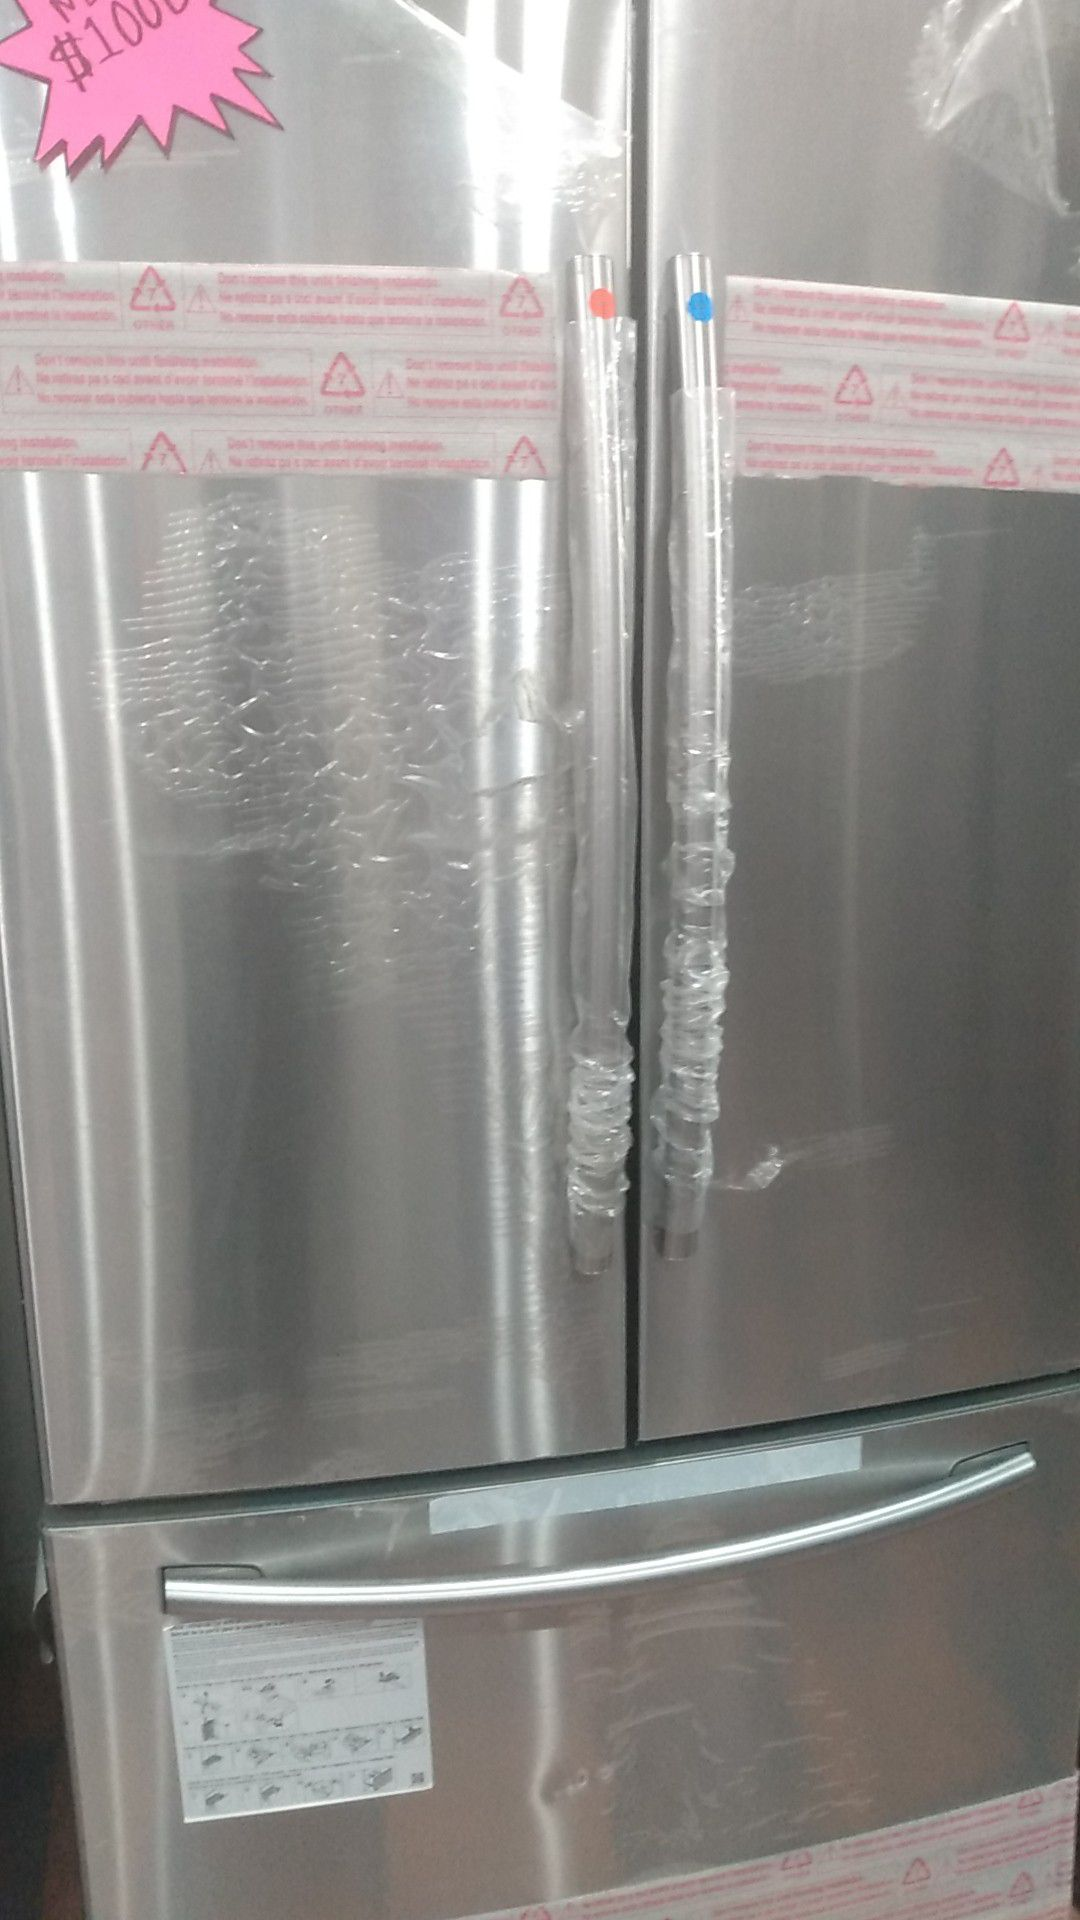 Samsung refrigerador fresh door stainless steel 90 days warranty delivered and installation avalable 1 year free labor$1000